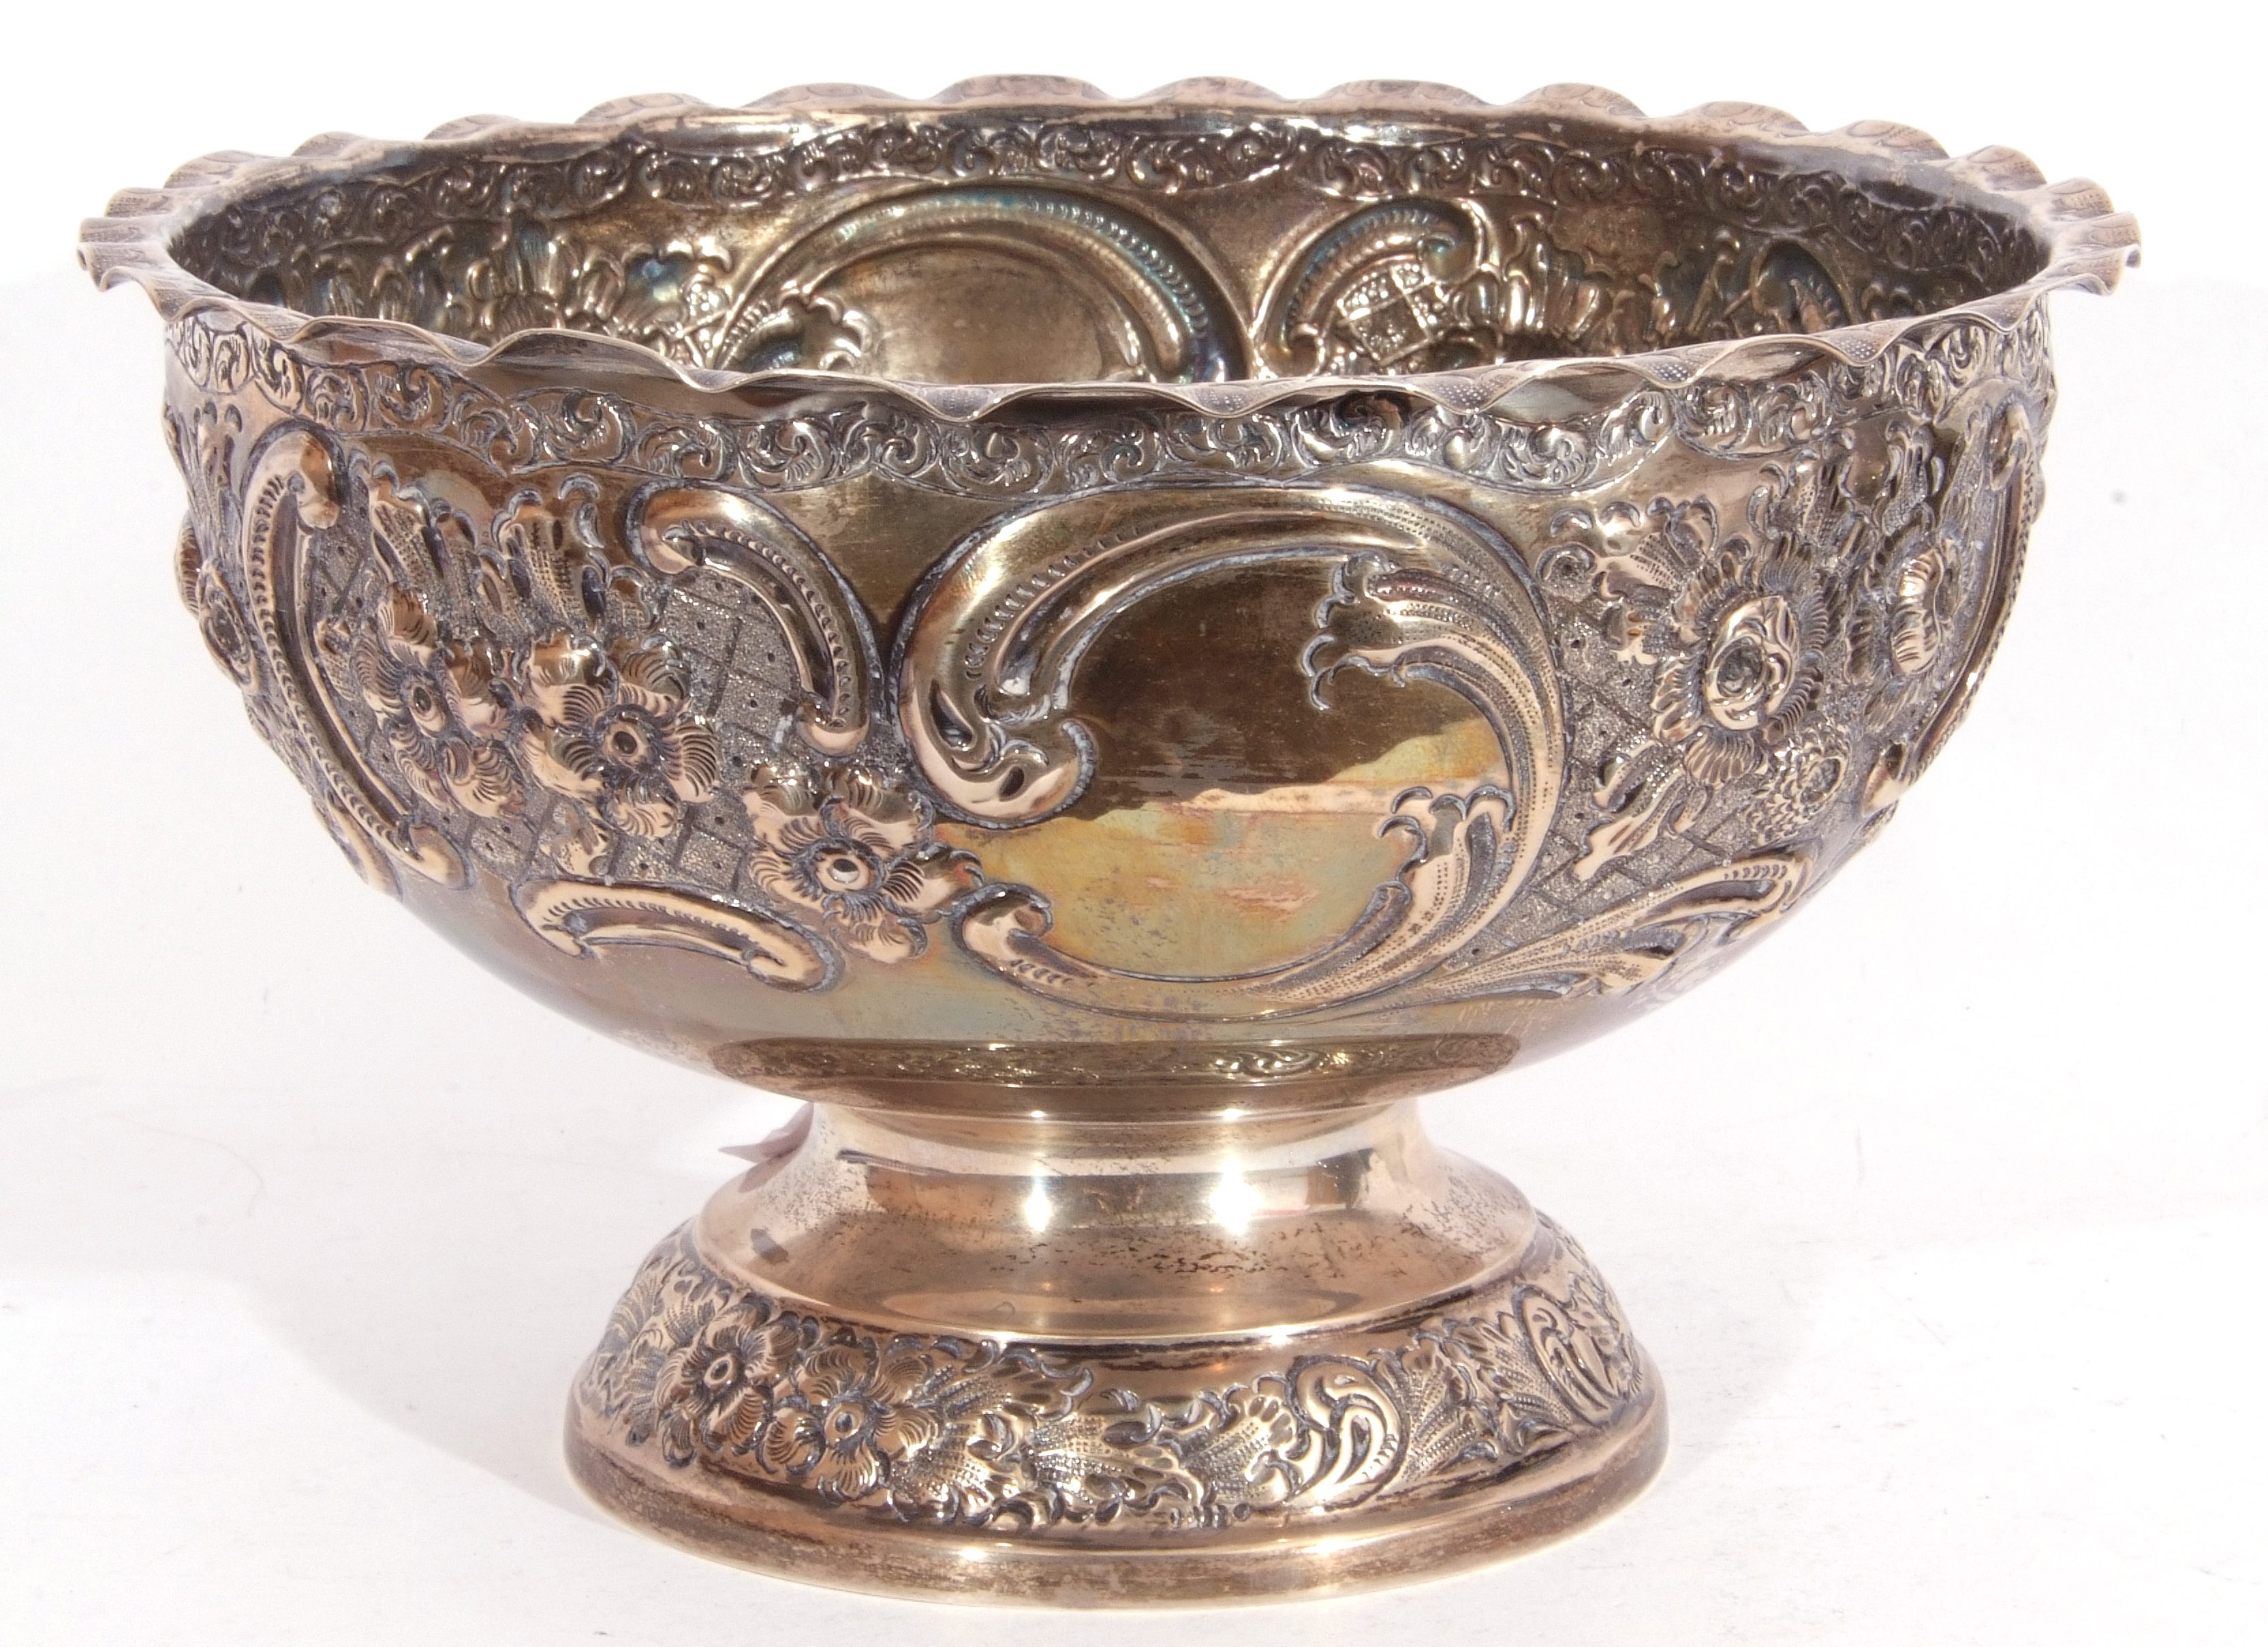 Late Victorian silver rose bowl raised on a pedestal foot and having an all over chased leaf and - Image 2 of 4